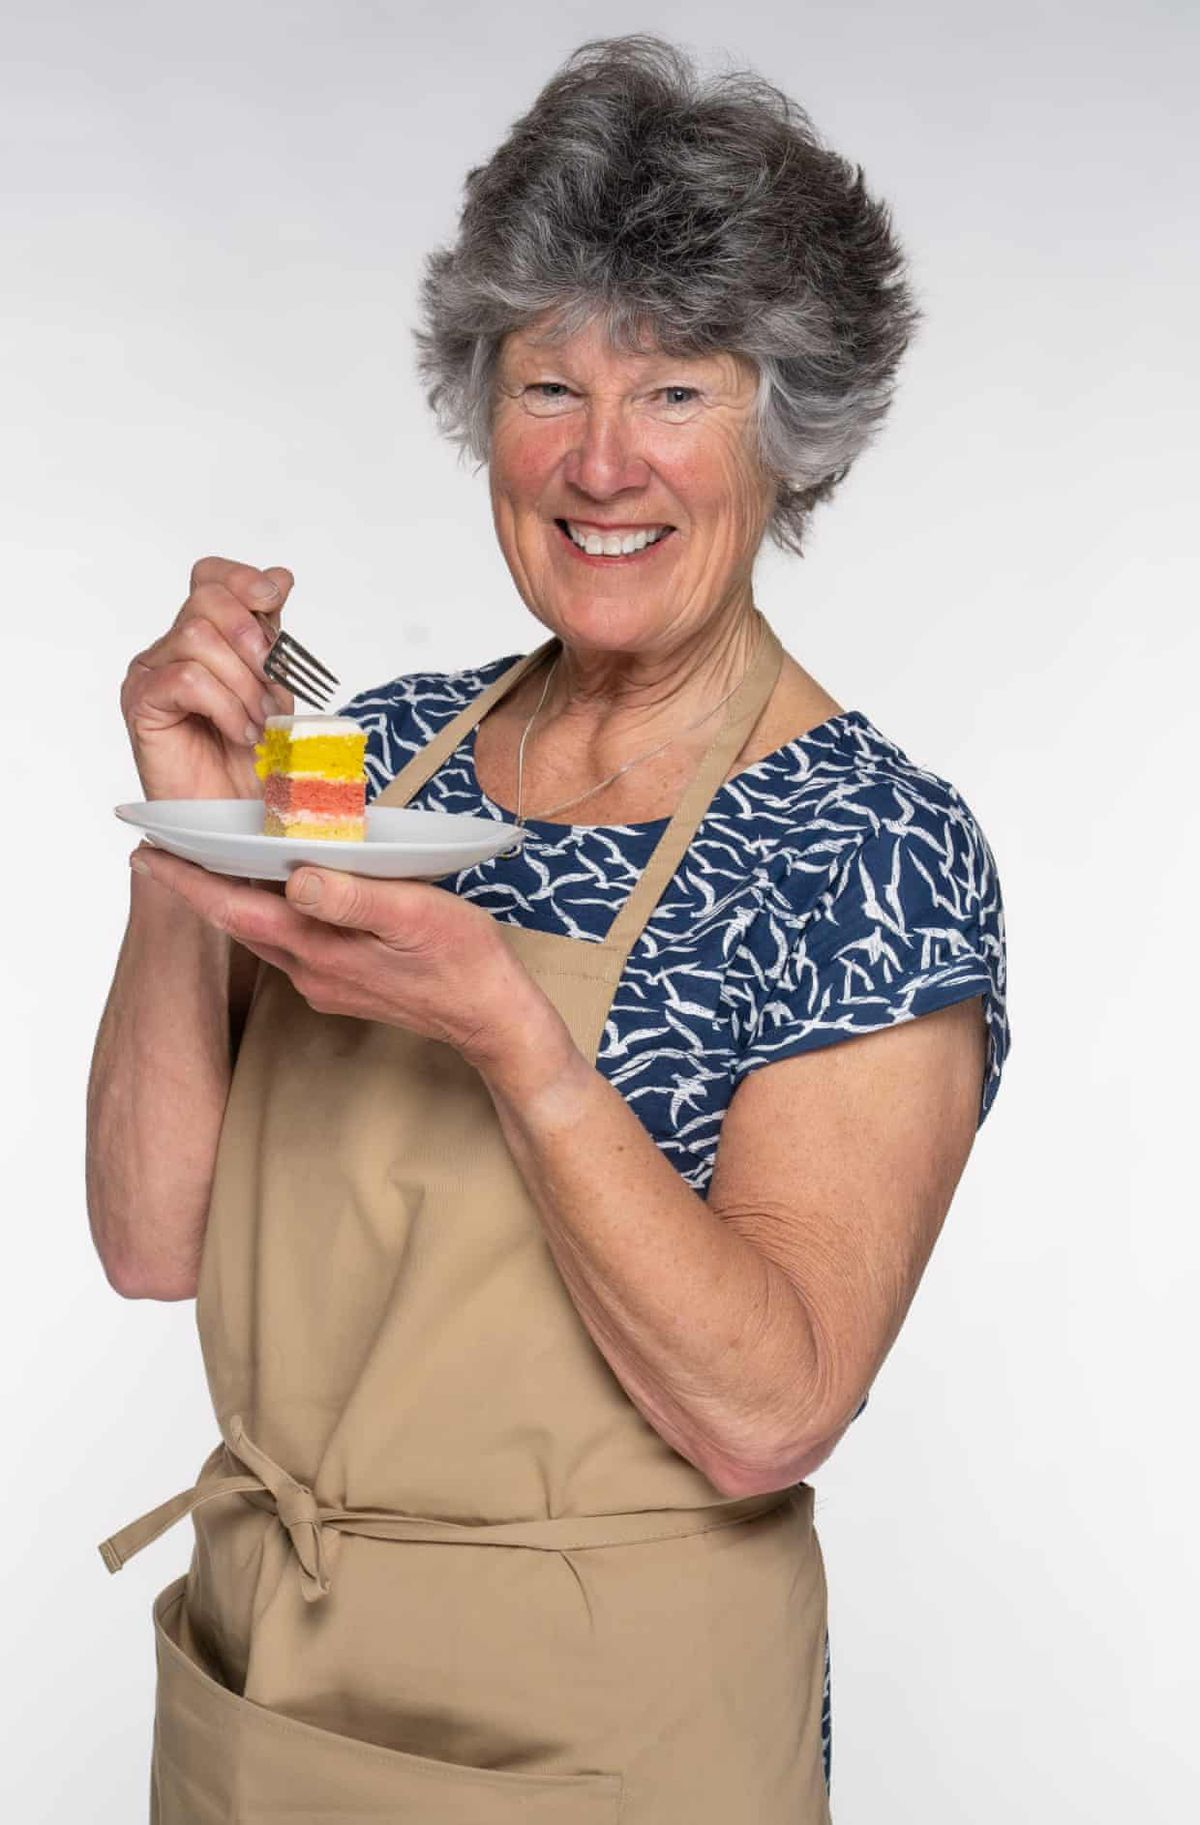 Great British Bake Off 2021 contestant Maggie, who will compete on GBBO this year